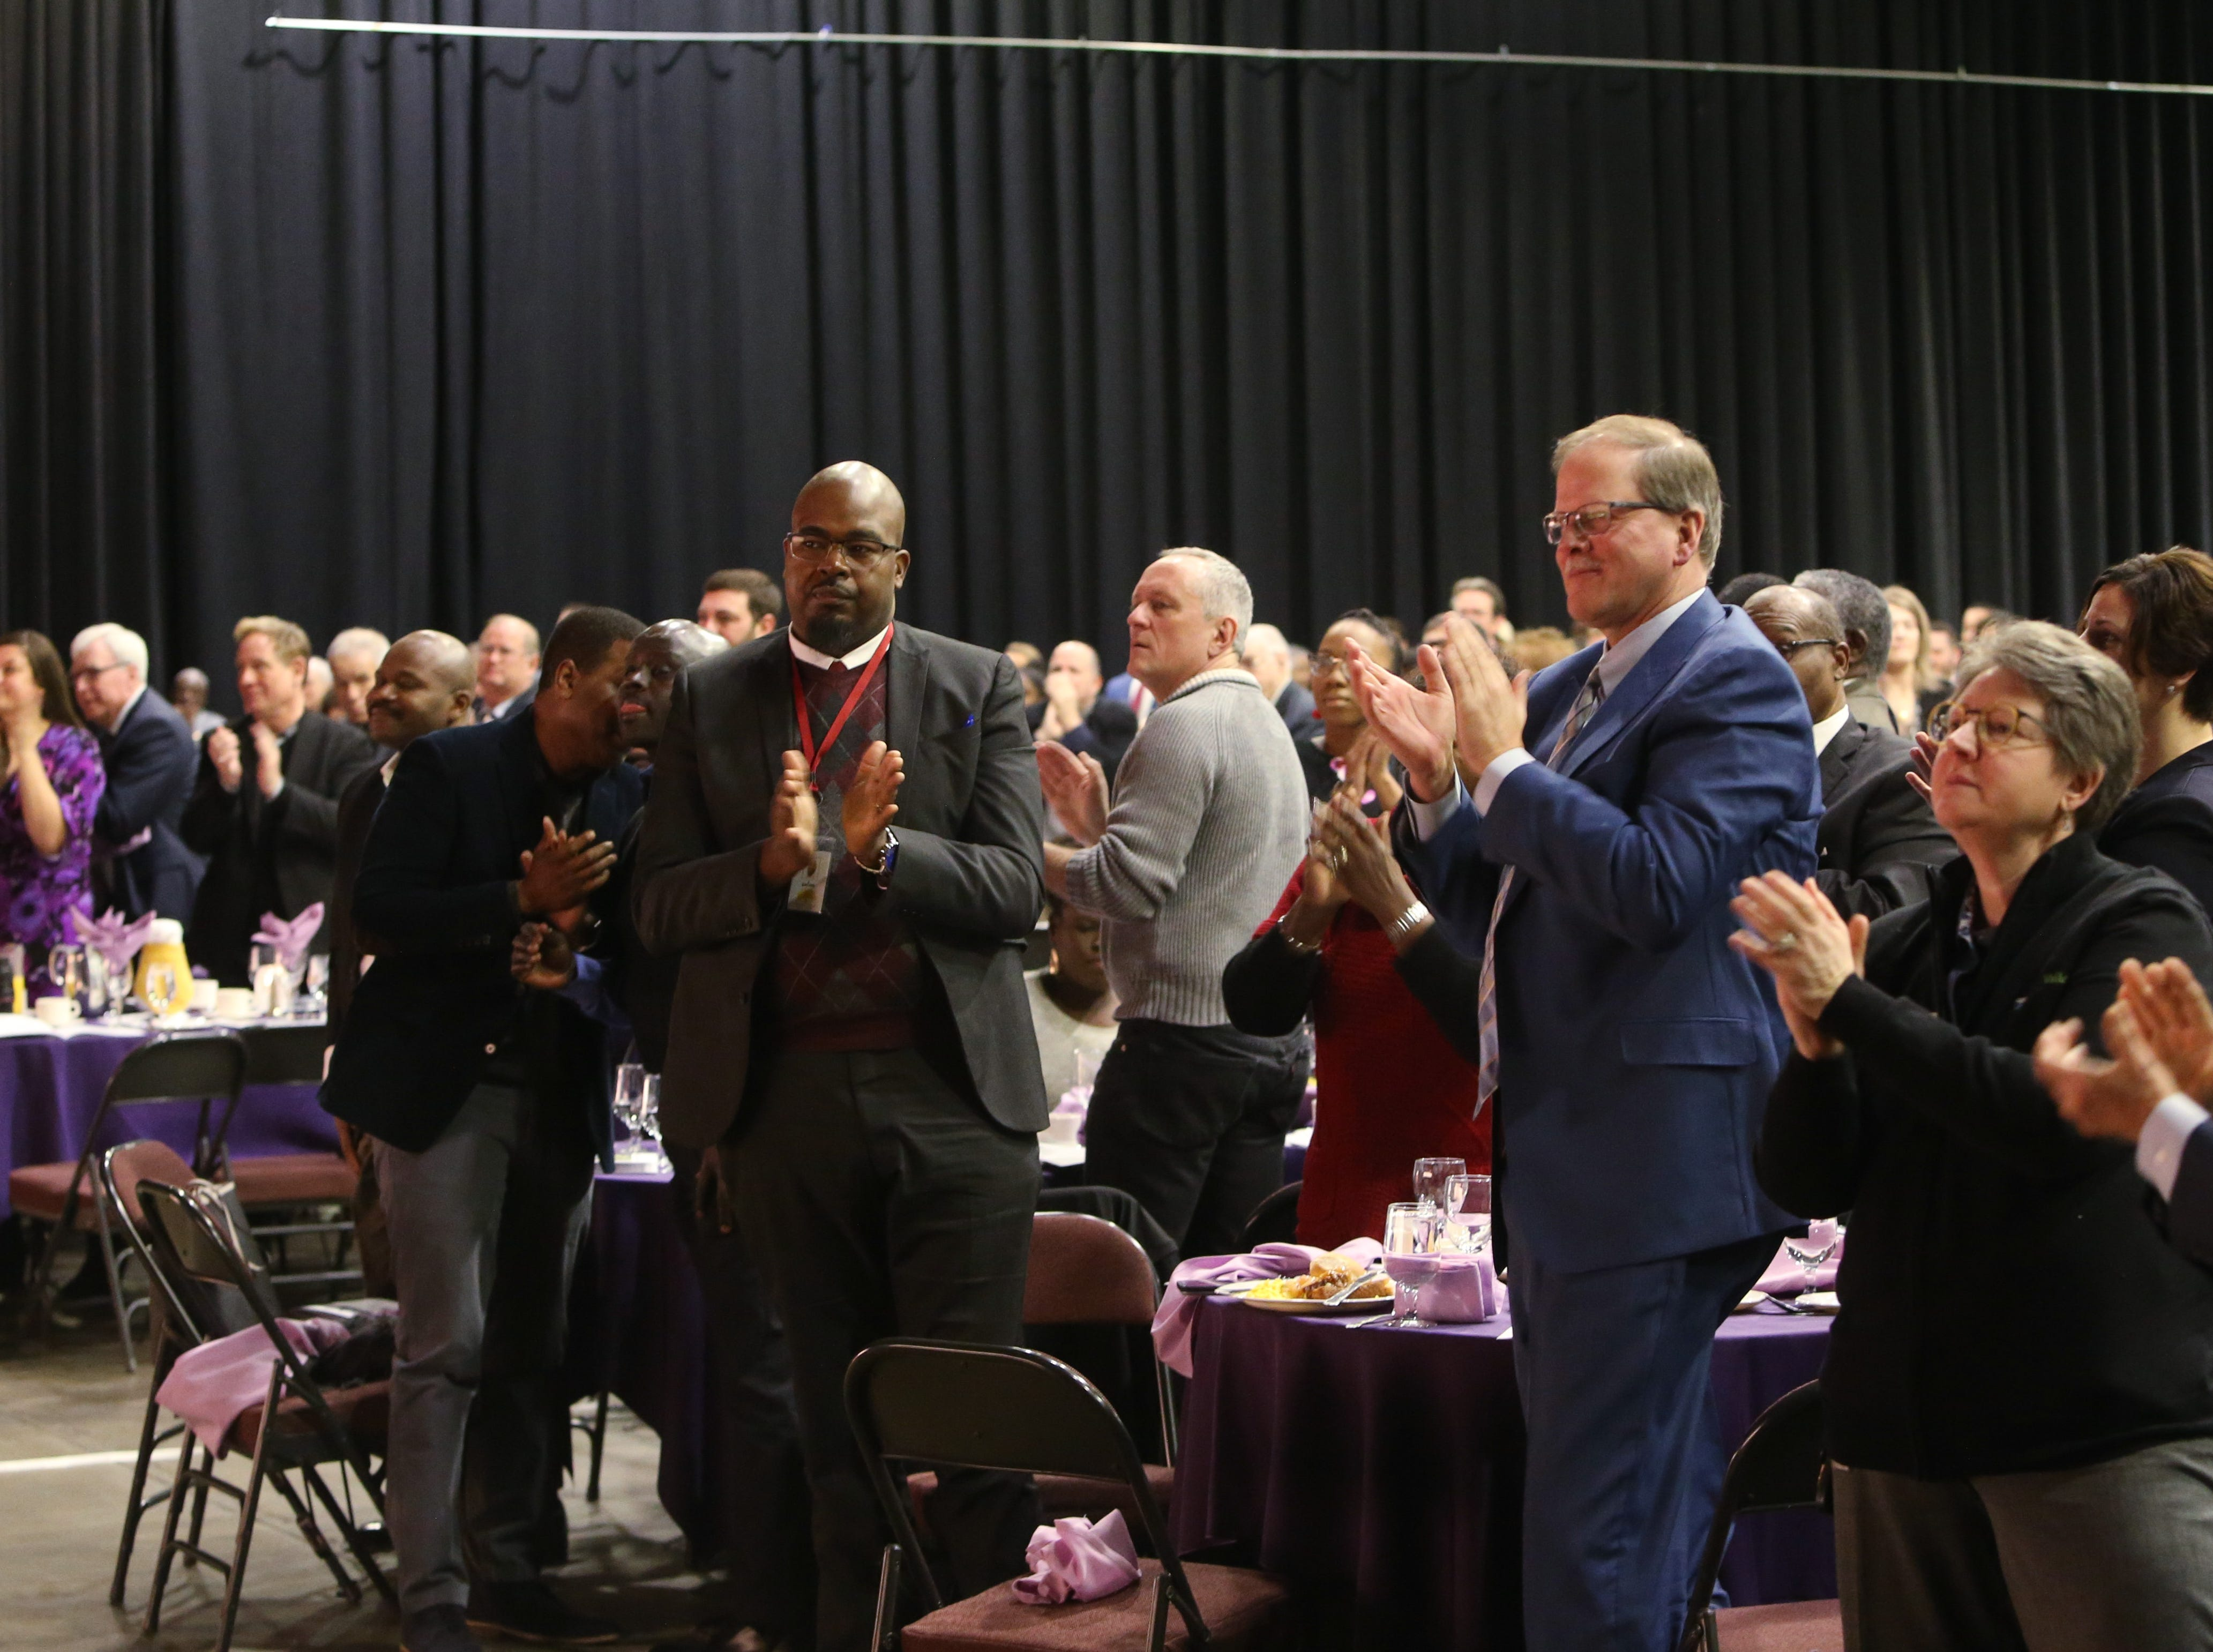 Attendees applaud youth honoree Sashawna A. Isaacs during the Martin Luther King Jr. Breakfast in the City of Poughkeepsie on January 25, 2019.